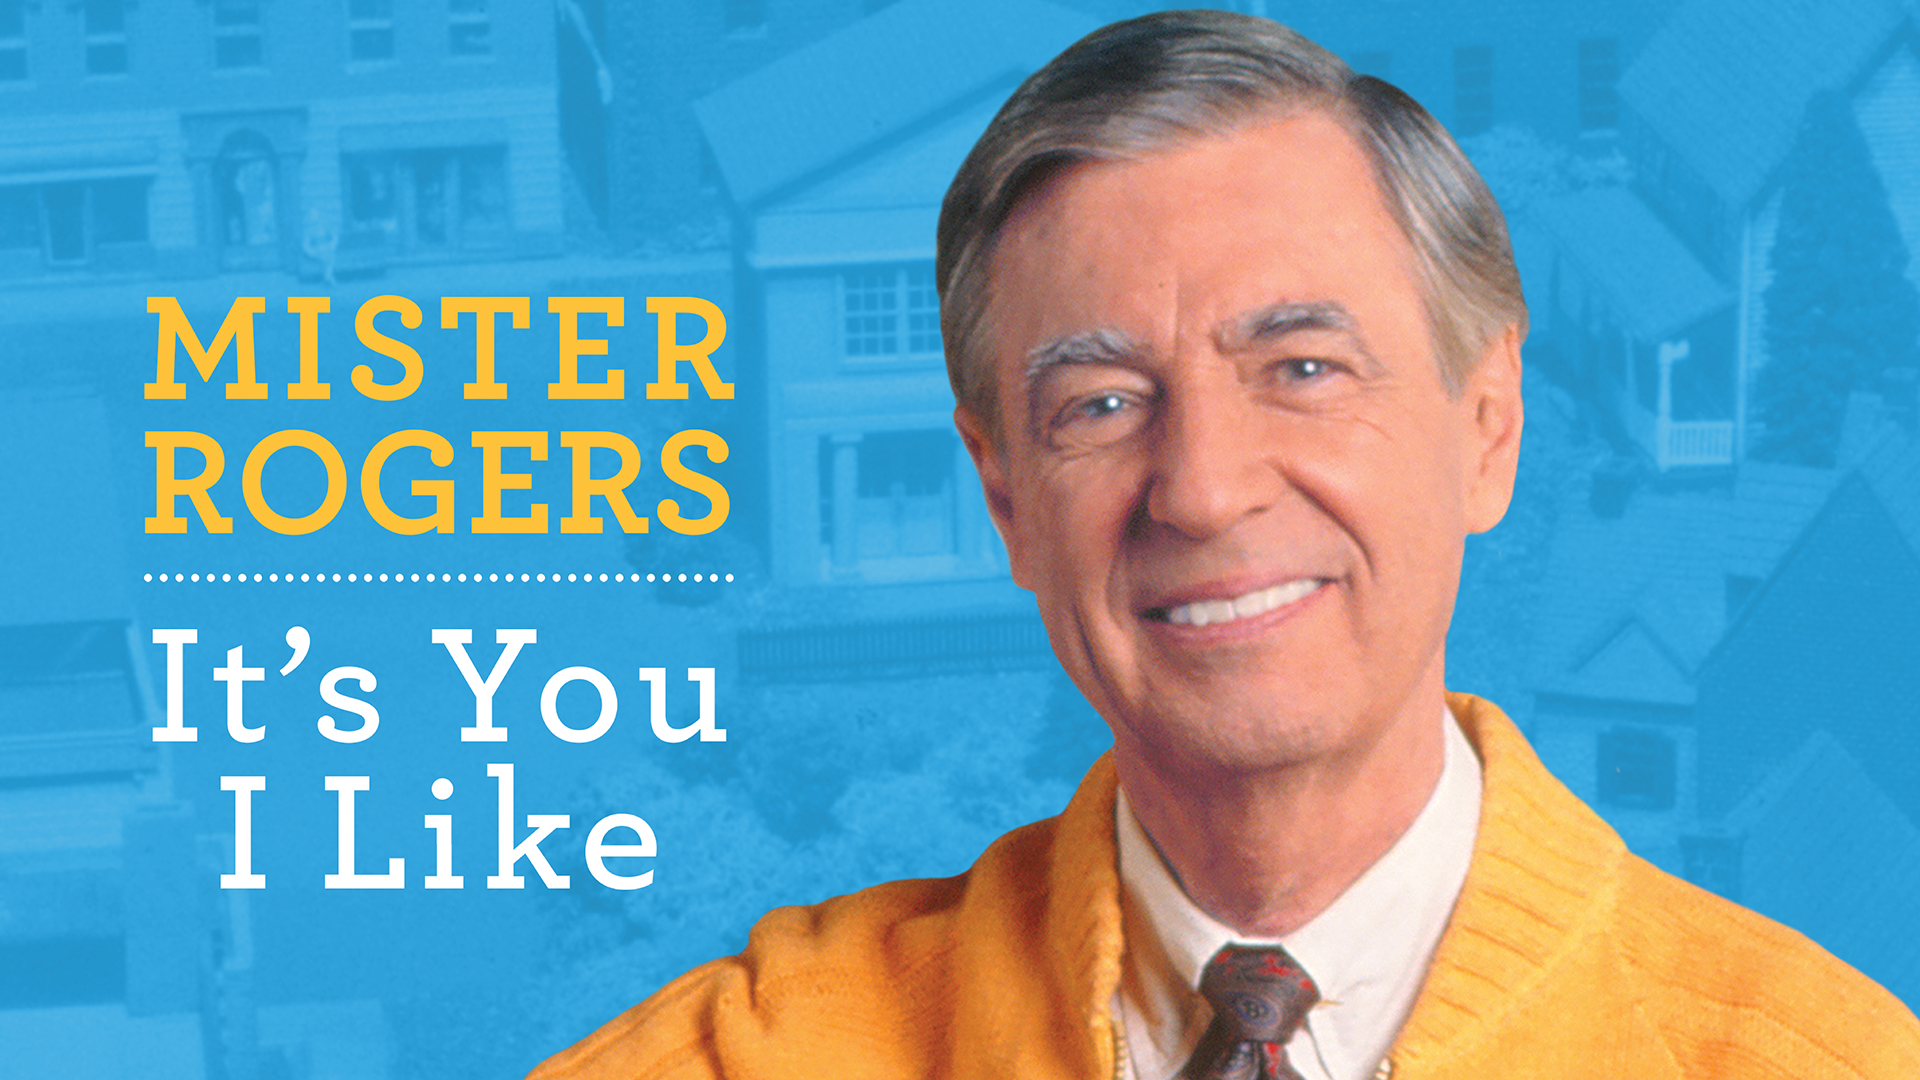 March pledge period to feature 'Mister Rogers' special, new concerts, more